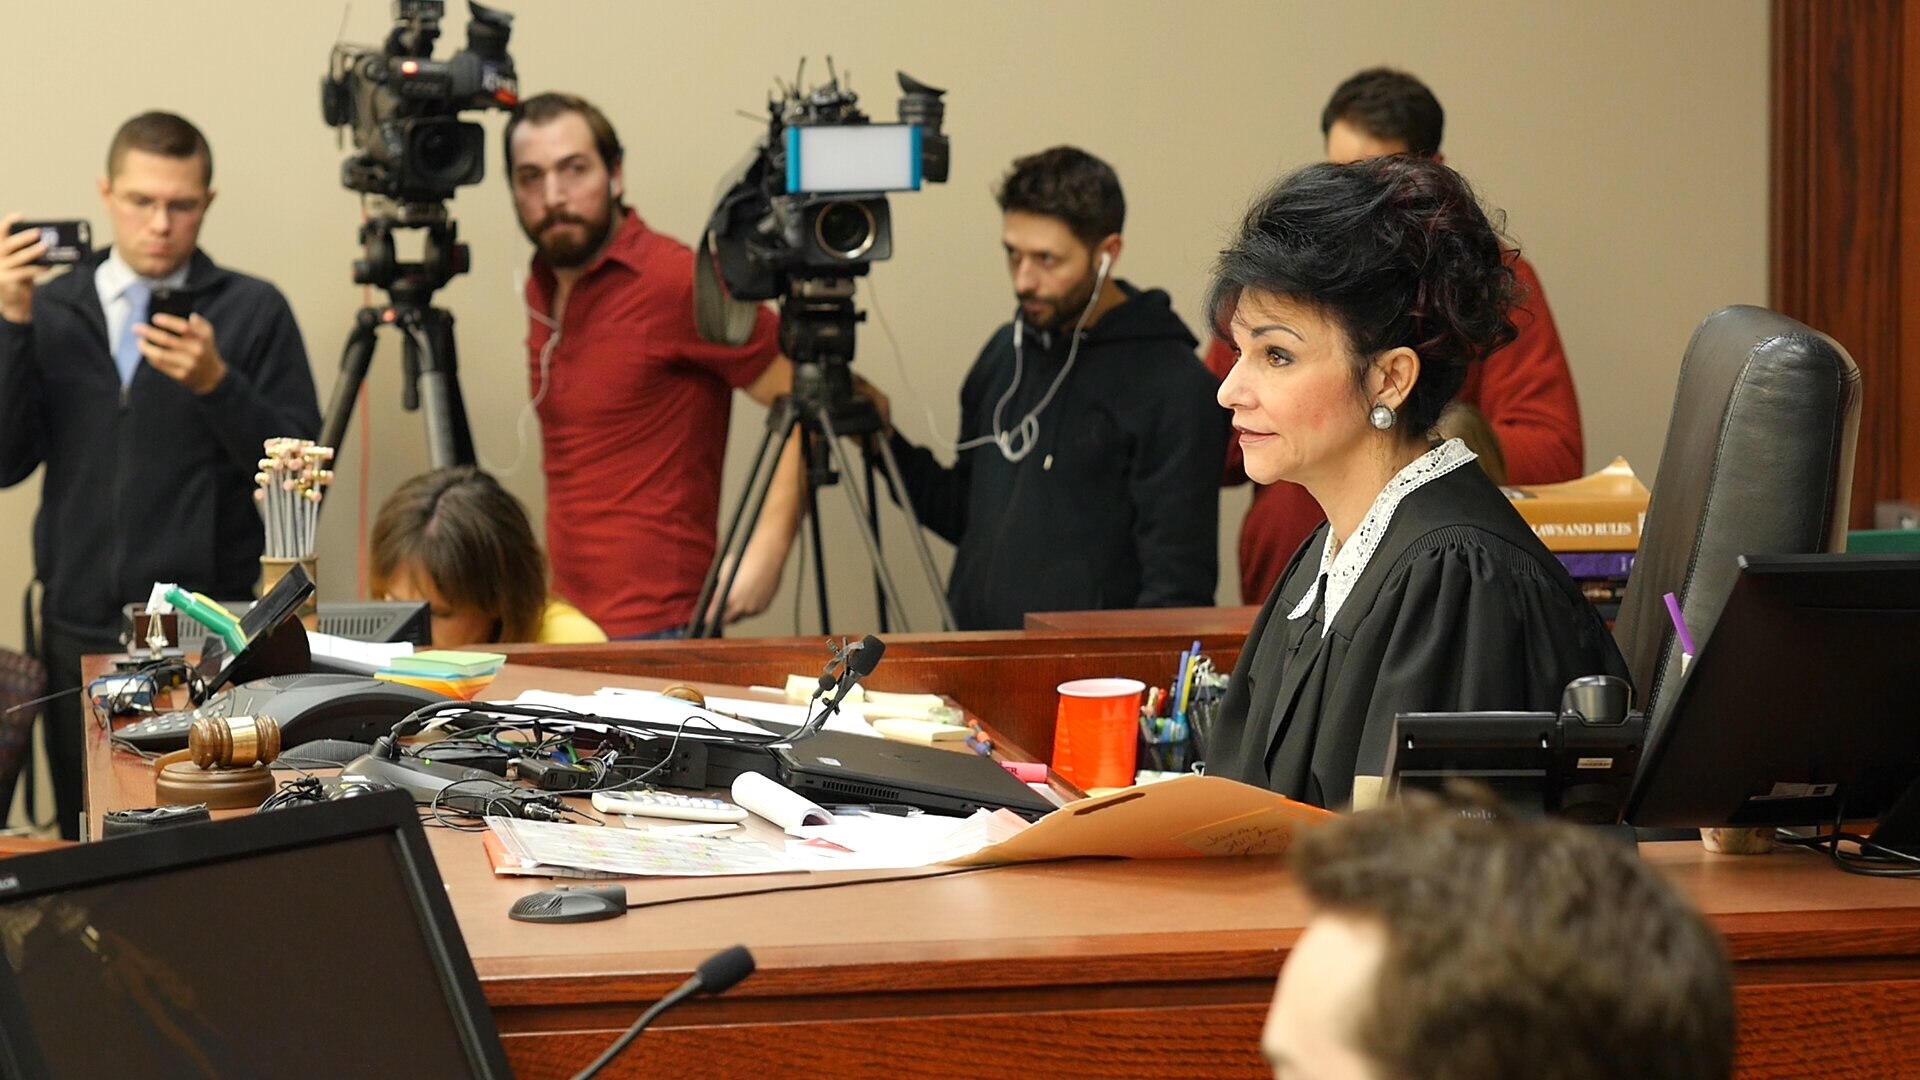 Copy of Aquilina in court 01.jpg